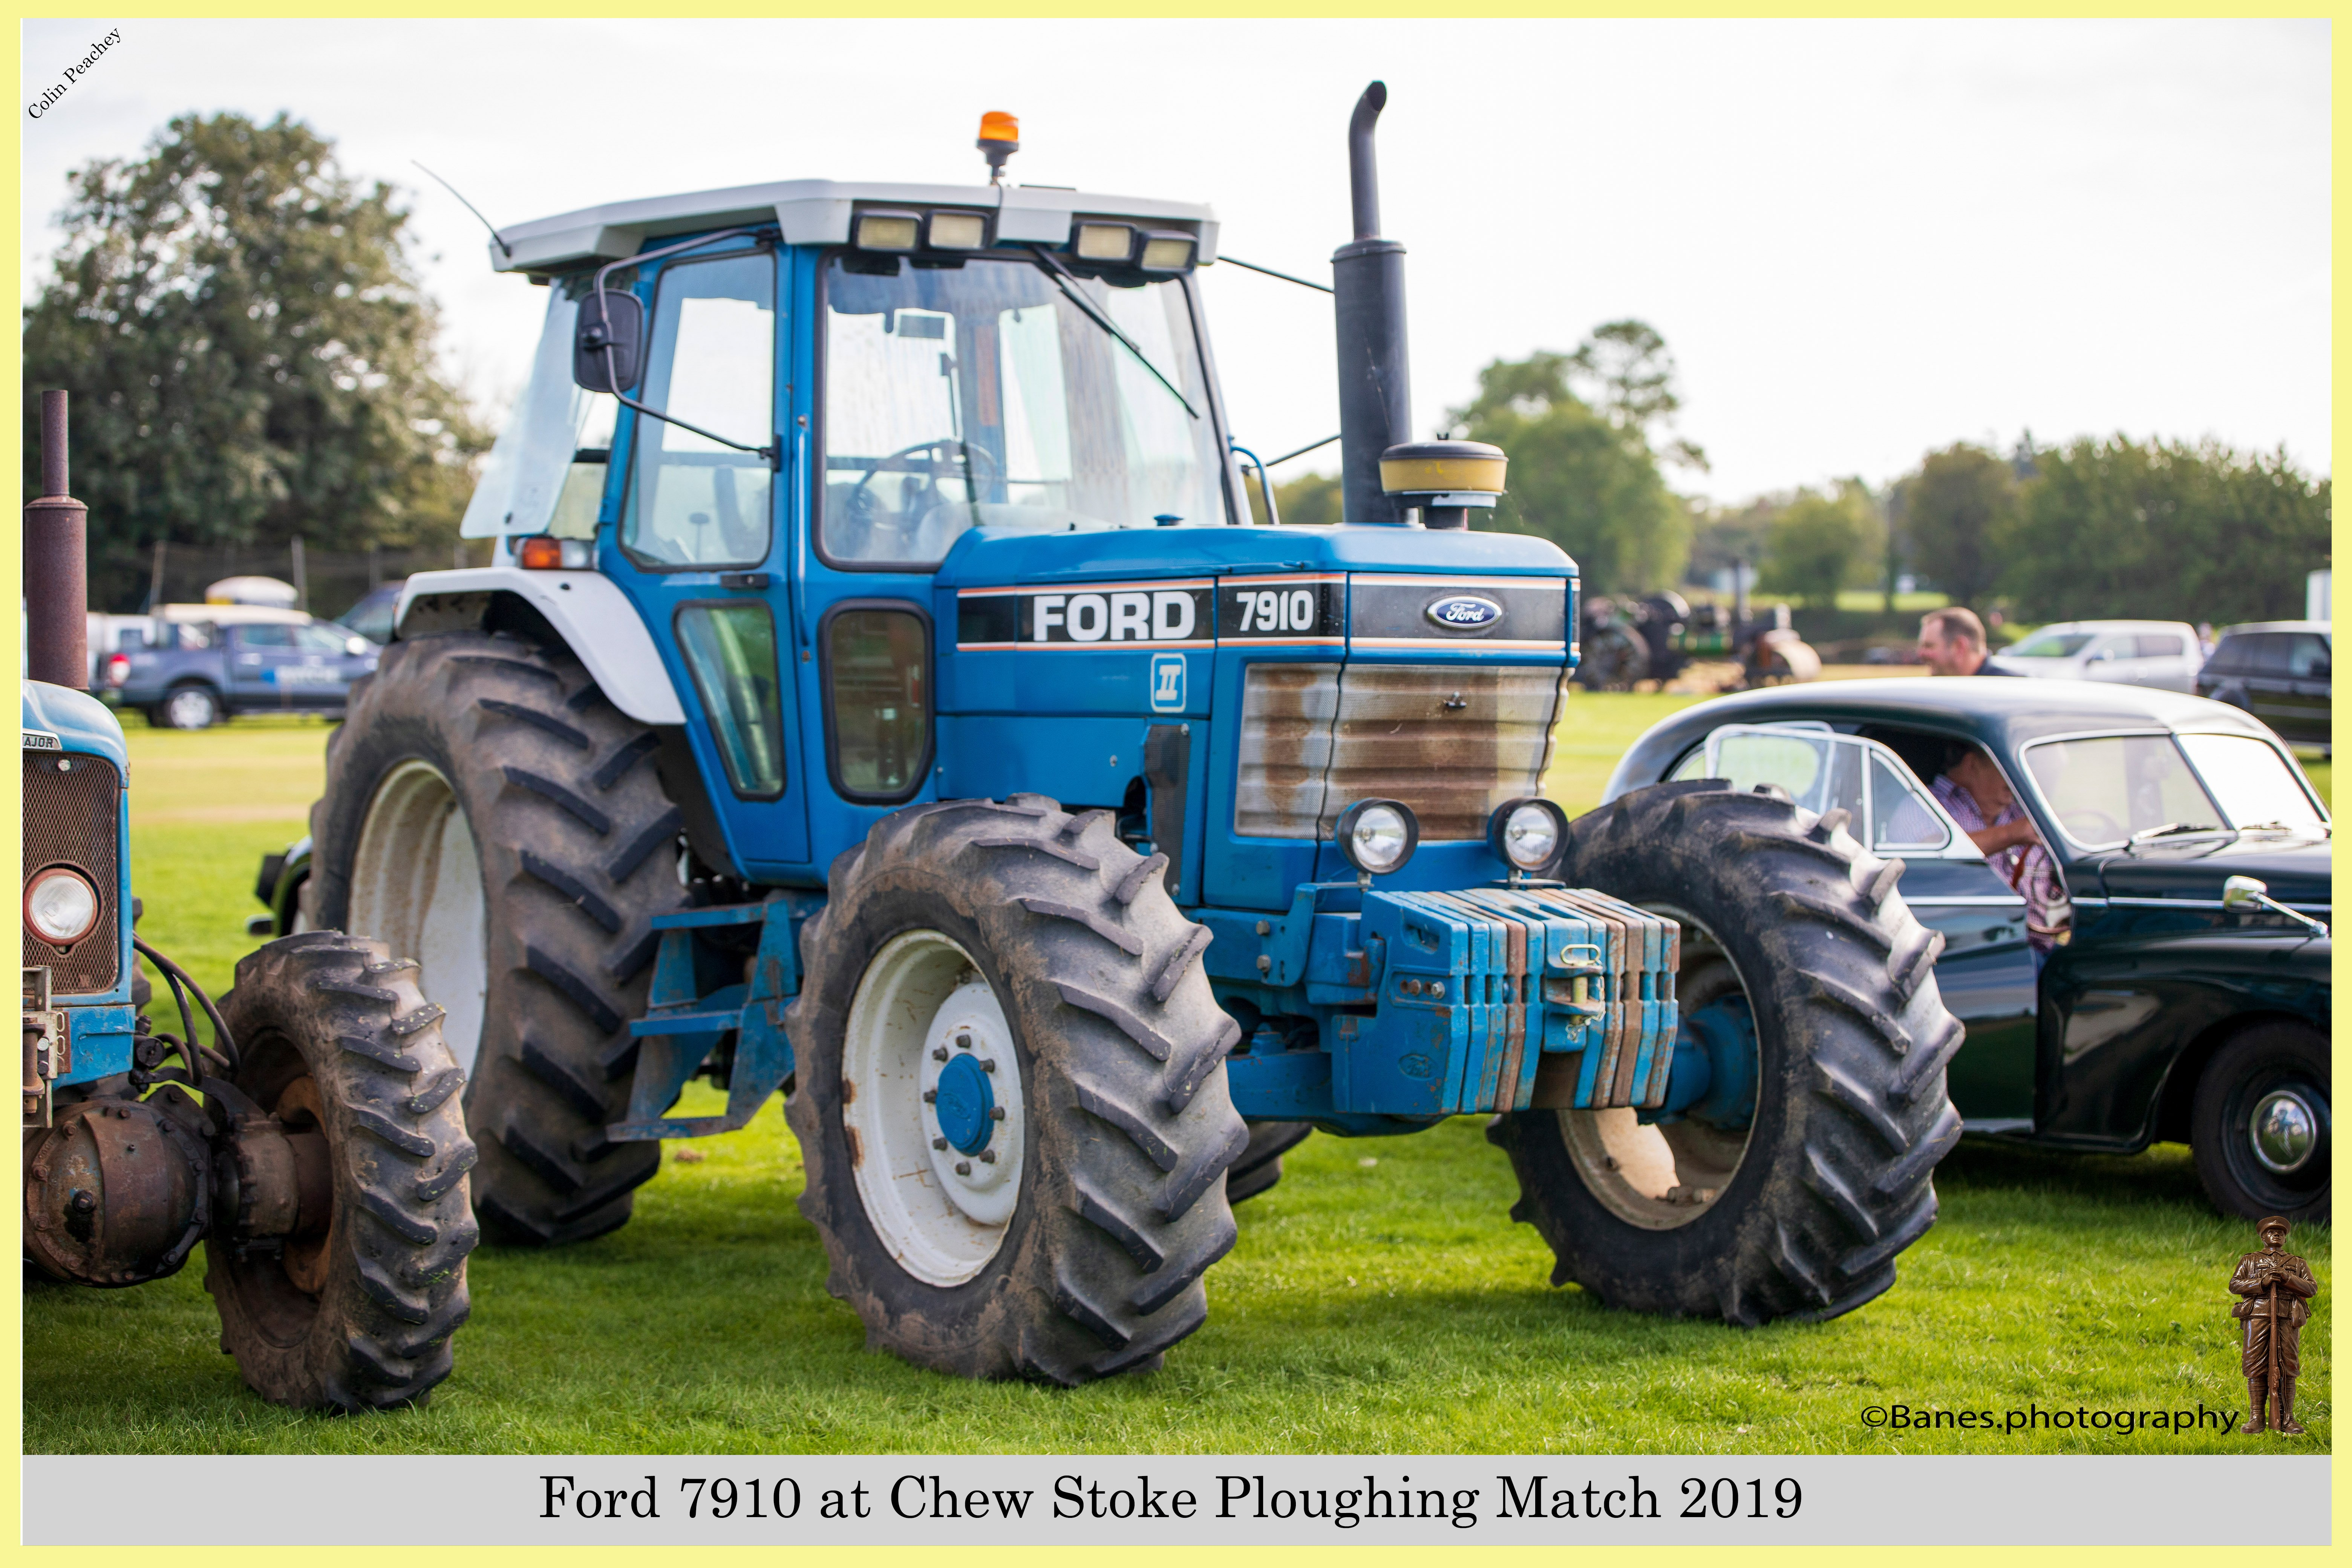 Ford 7910, E928 WCL, at Chew Stoke 2019